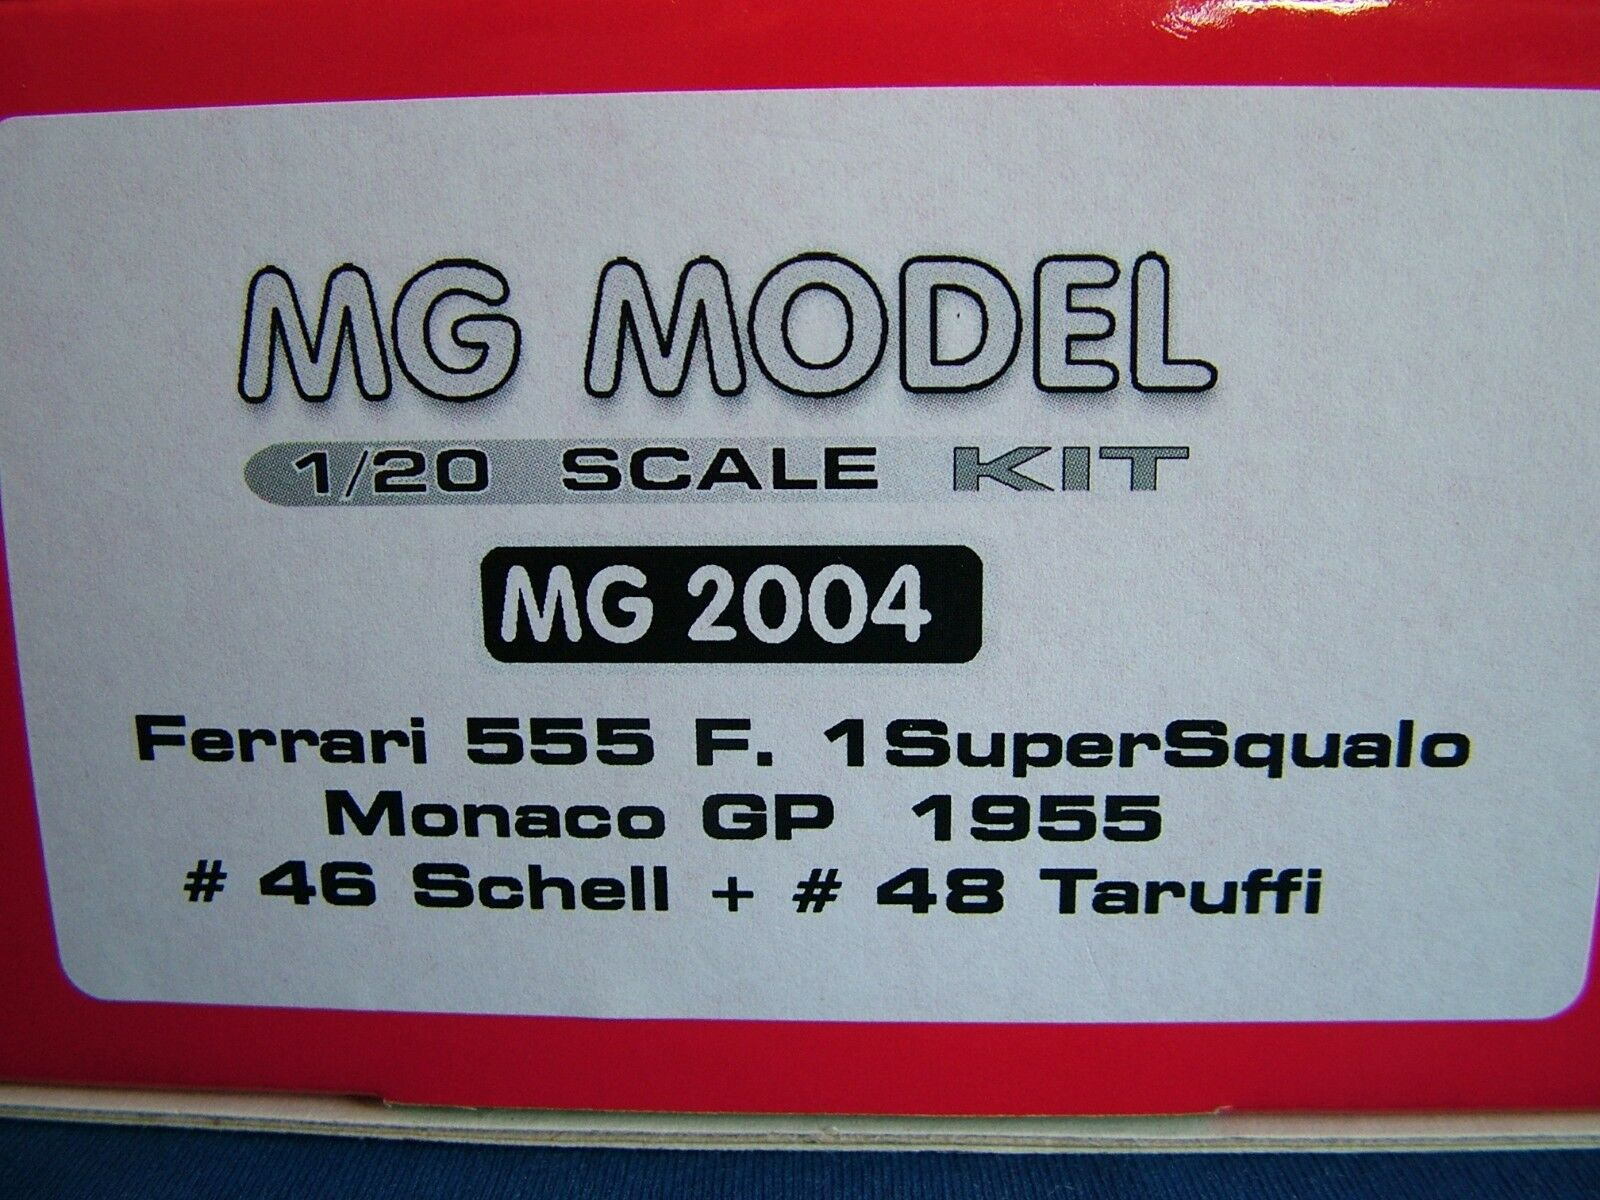 MG MODEL PLUS 20.04 - 1955 FERRARI 555 F1 - 1 20TH SCALE RESIN & METAL KIT